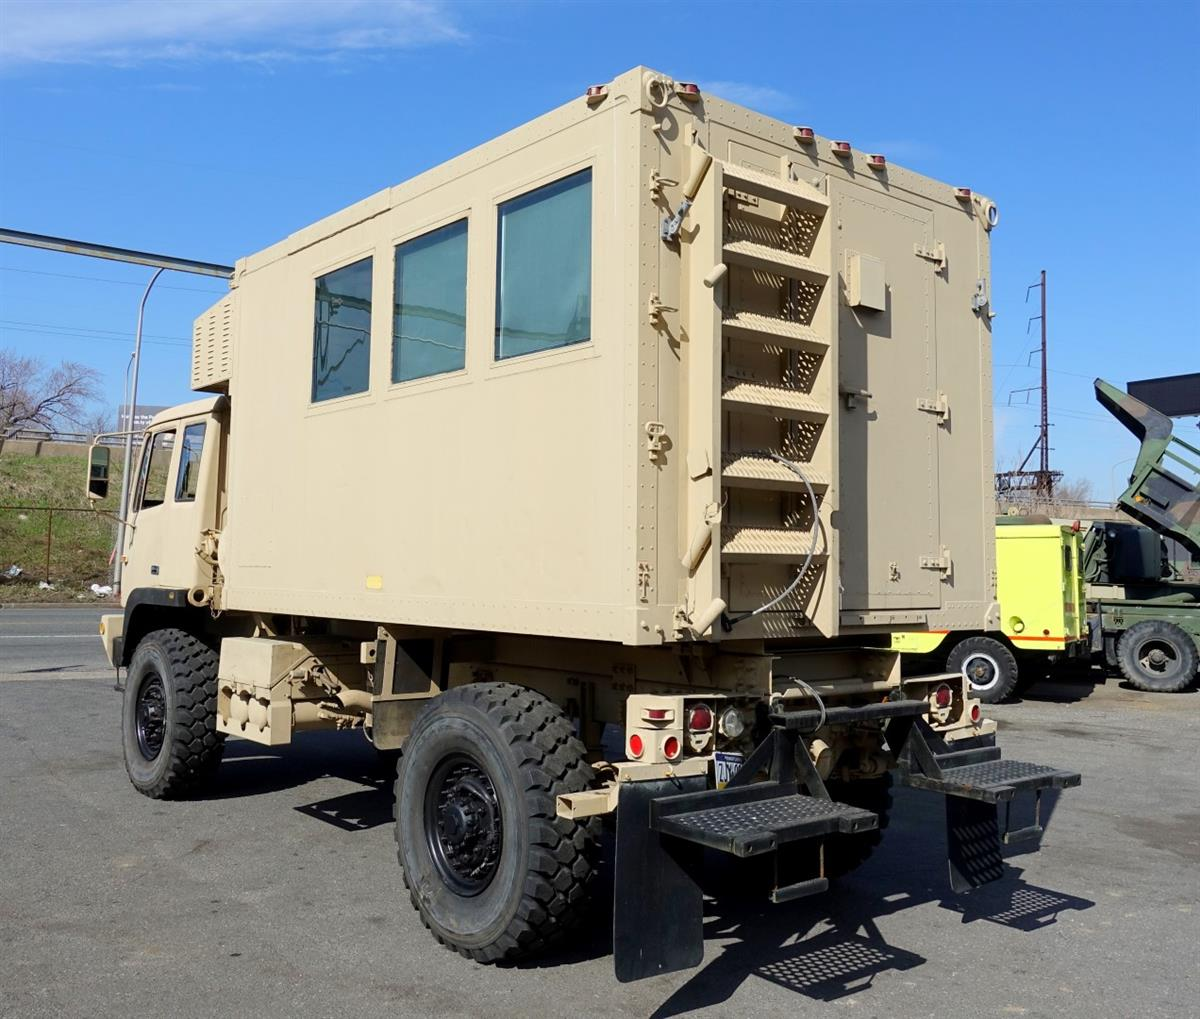 M1079 FMTV Van Truck at Eastern Surplus & Equipment Co  for